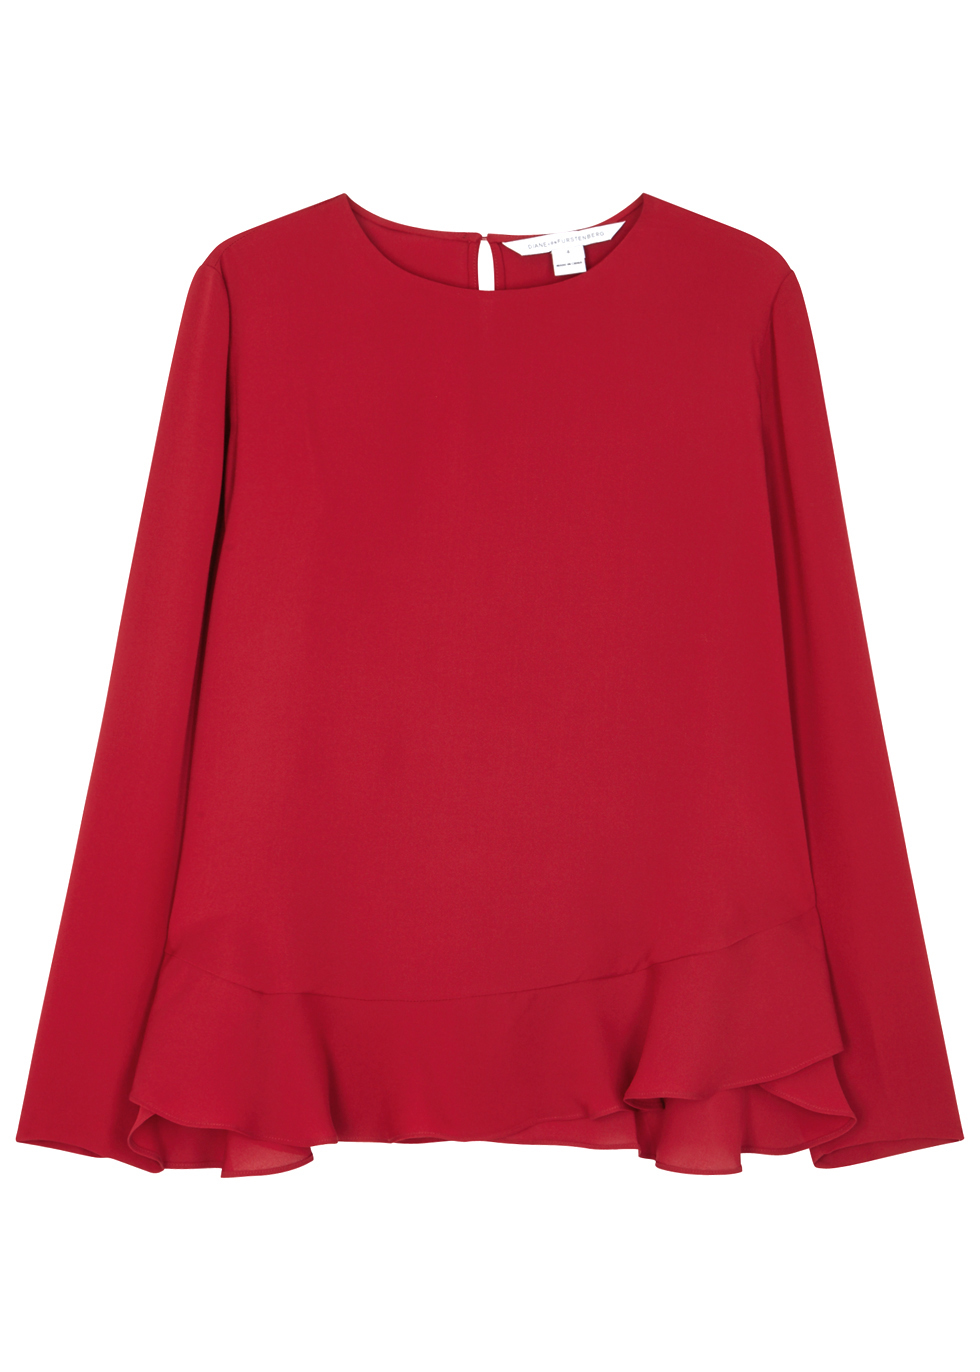 Gallia Red Ruffled Silk Blouse - pattern: plain; style: blouse; predominant colour: true red; occasions: evening; length: standard; fibres: silk - 100%; fit: straight cut; neckline: crew; hip detail: adds bulk at the hips; sleeve length: long sleeve; sleeve style: standard; texture group: silky - light; pattern type: fabric; season: a/w 2016; wardrobe: event